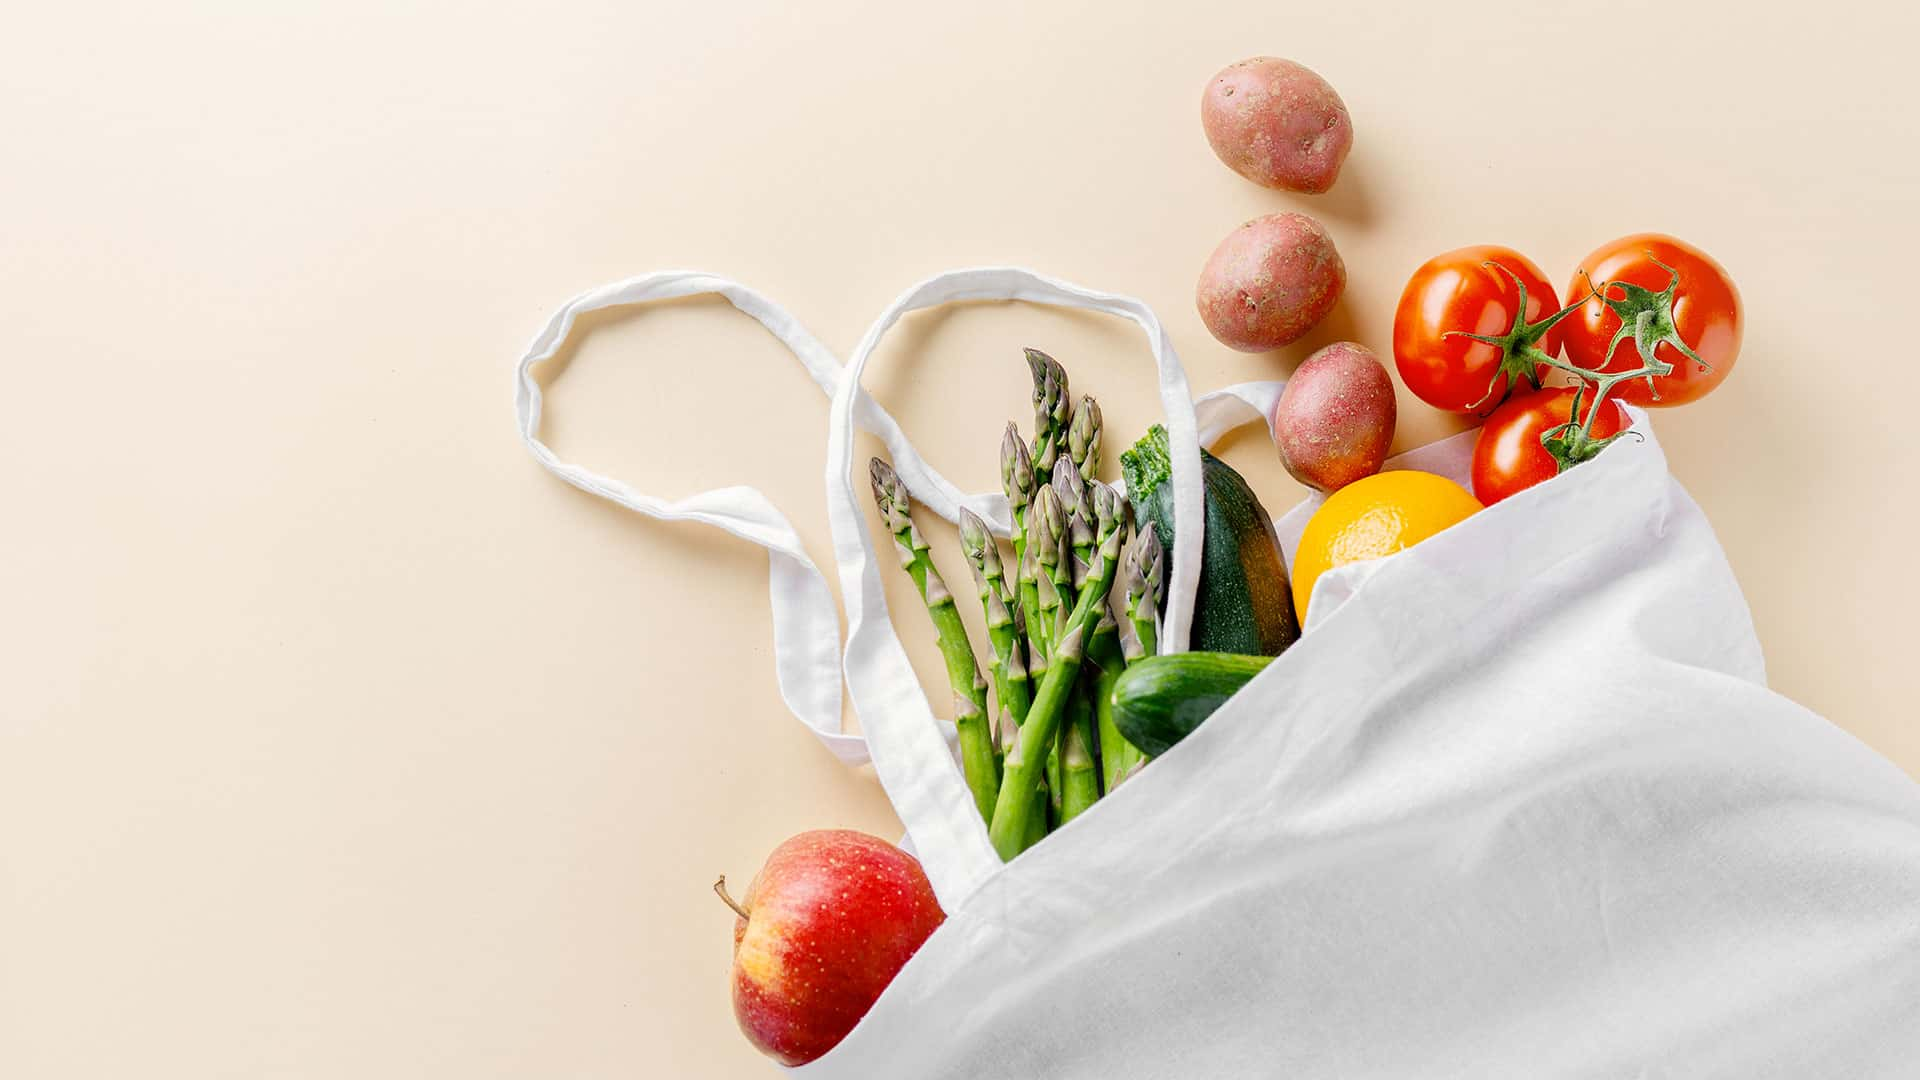 fruit-and-vegetables-in-shopping-bag